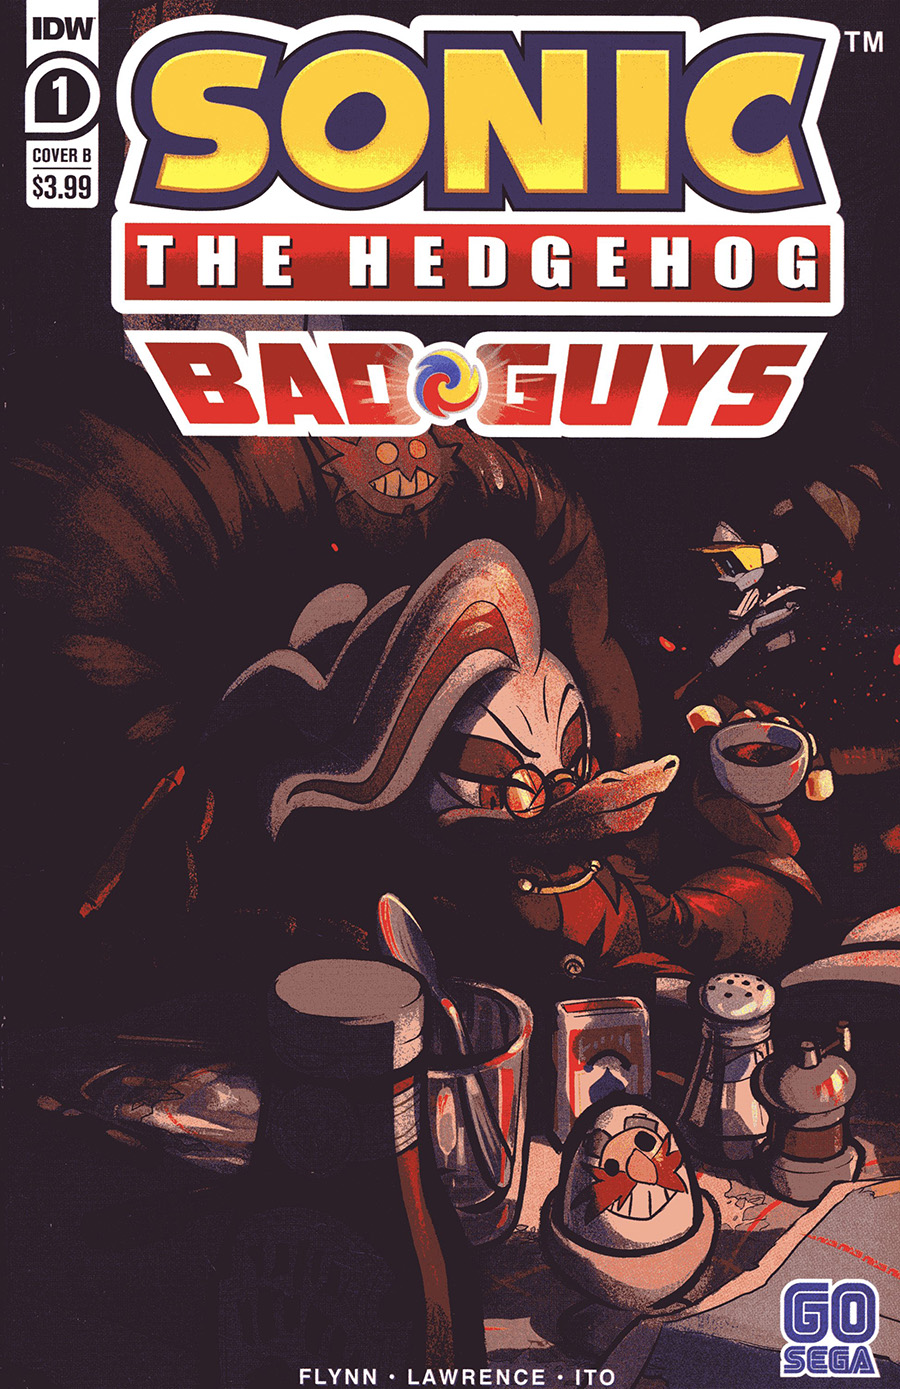 Sonic The Hedgehog Bad Guys #1 Cover B Variant Diana Skelly Cover